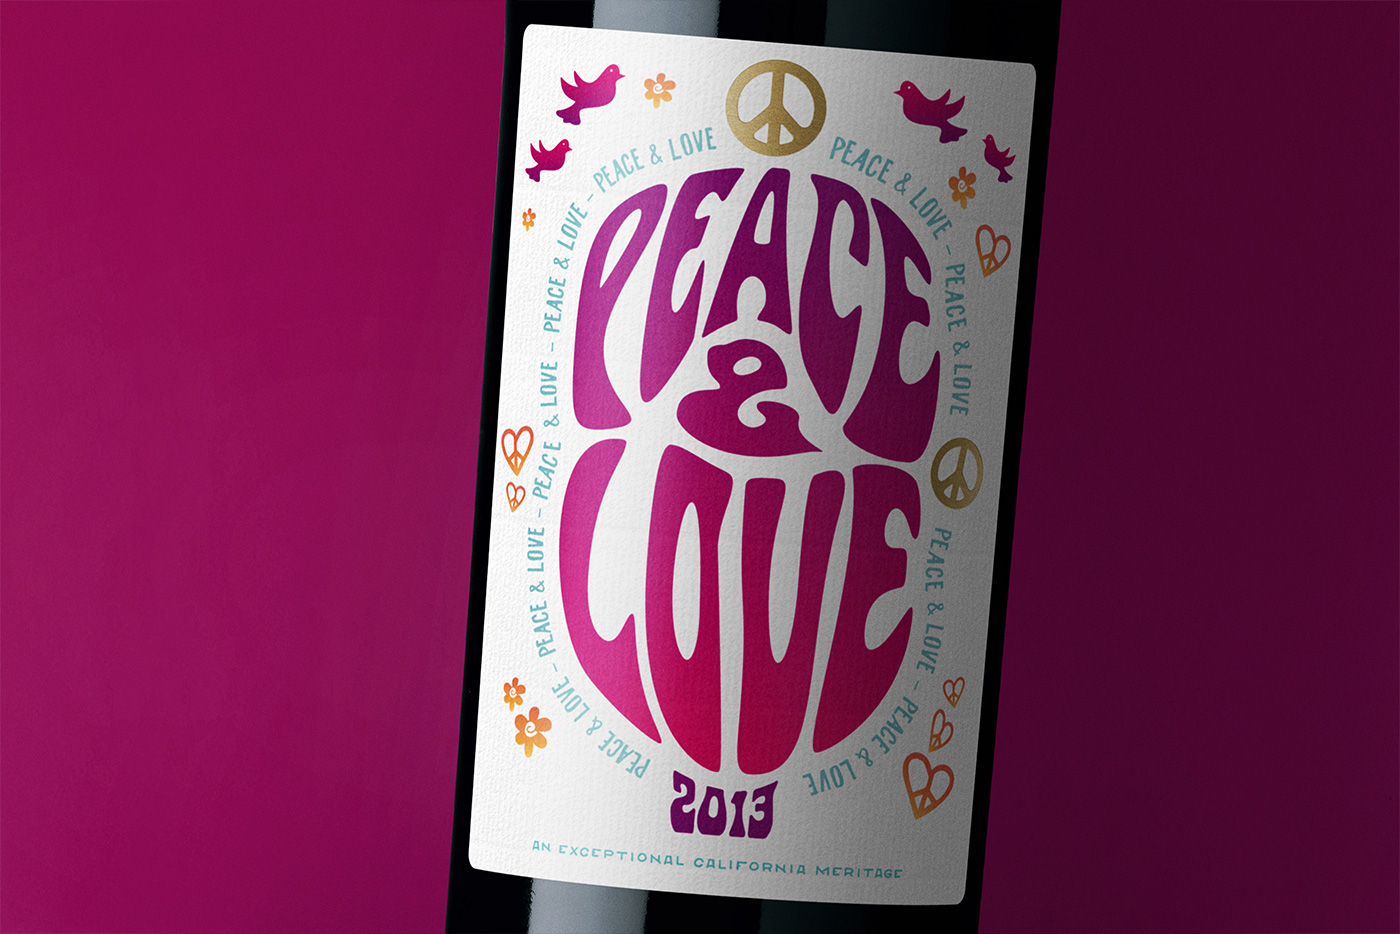 Peace & Love — California Meritage